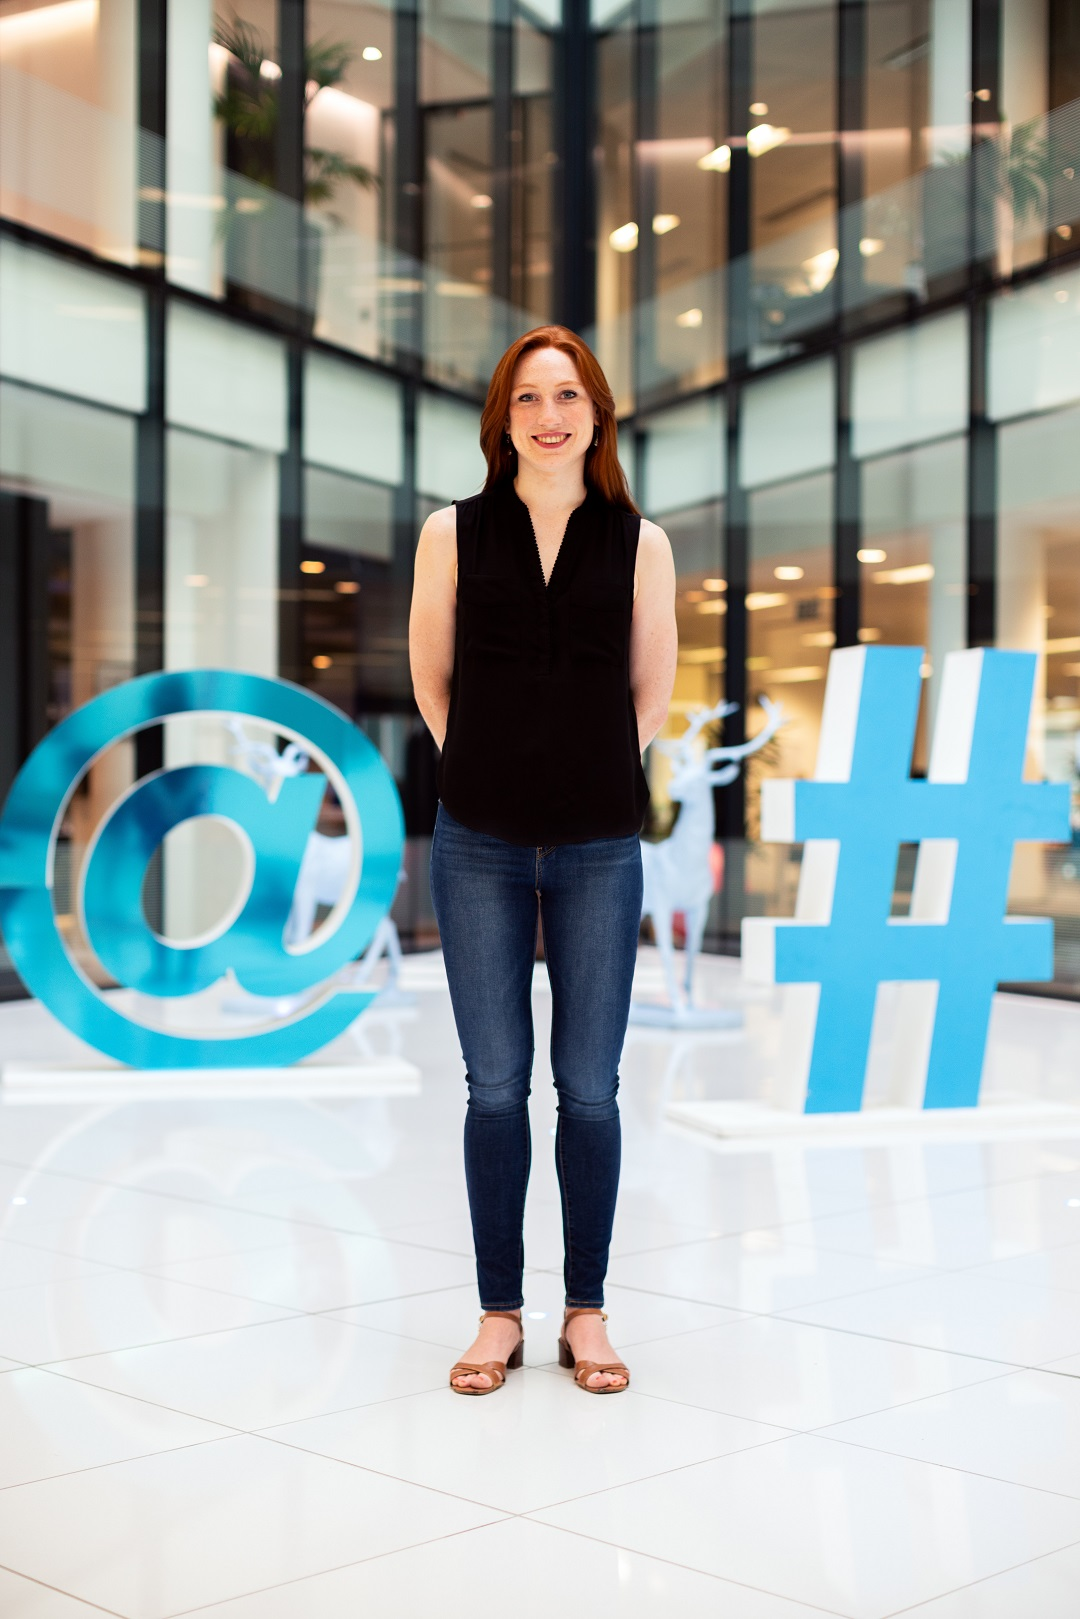 Tips on how to use hashtags on Twitter